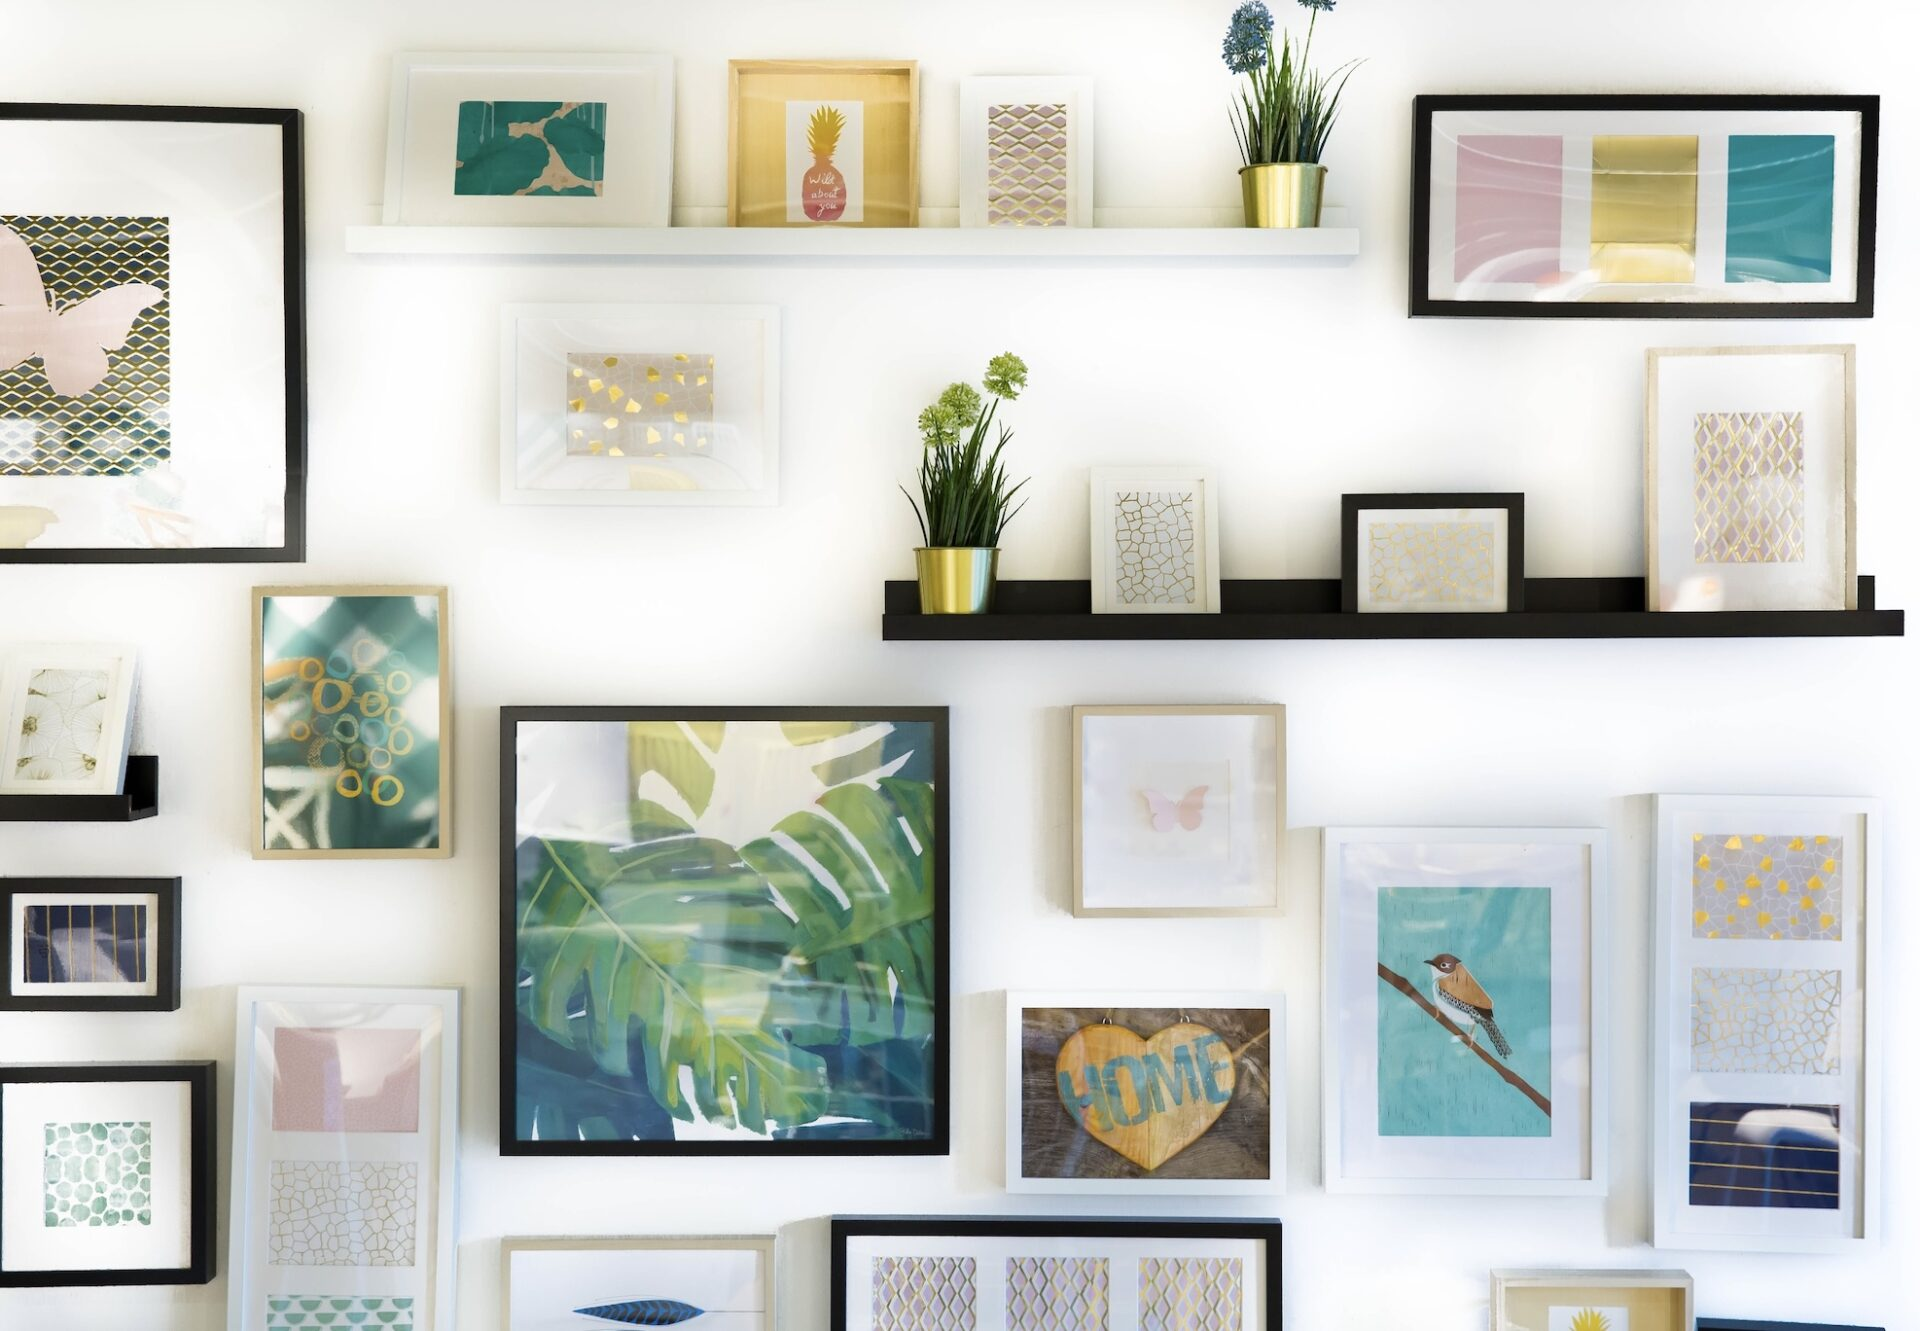 Home Decorating Mistakes Everyone Should Avoid